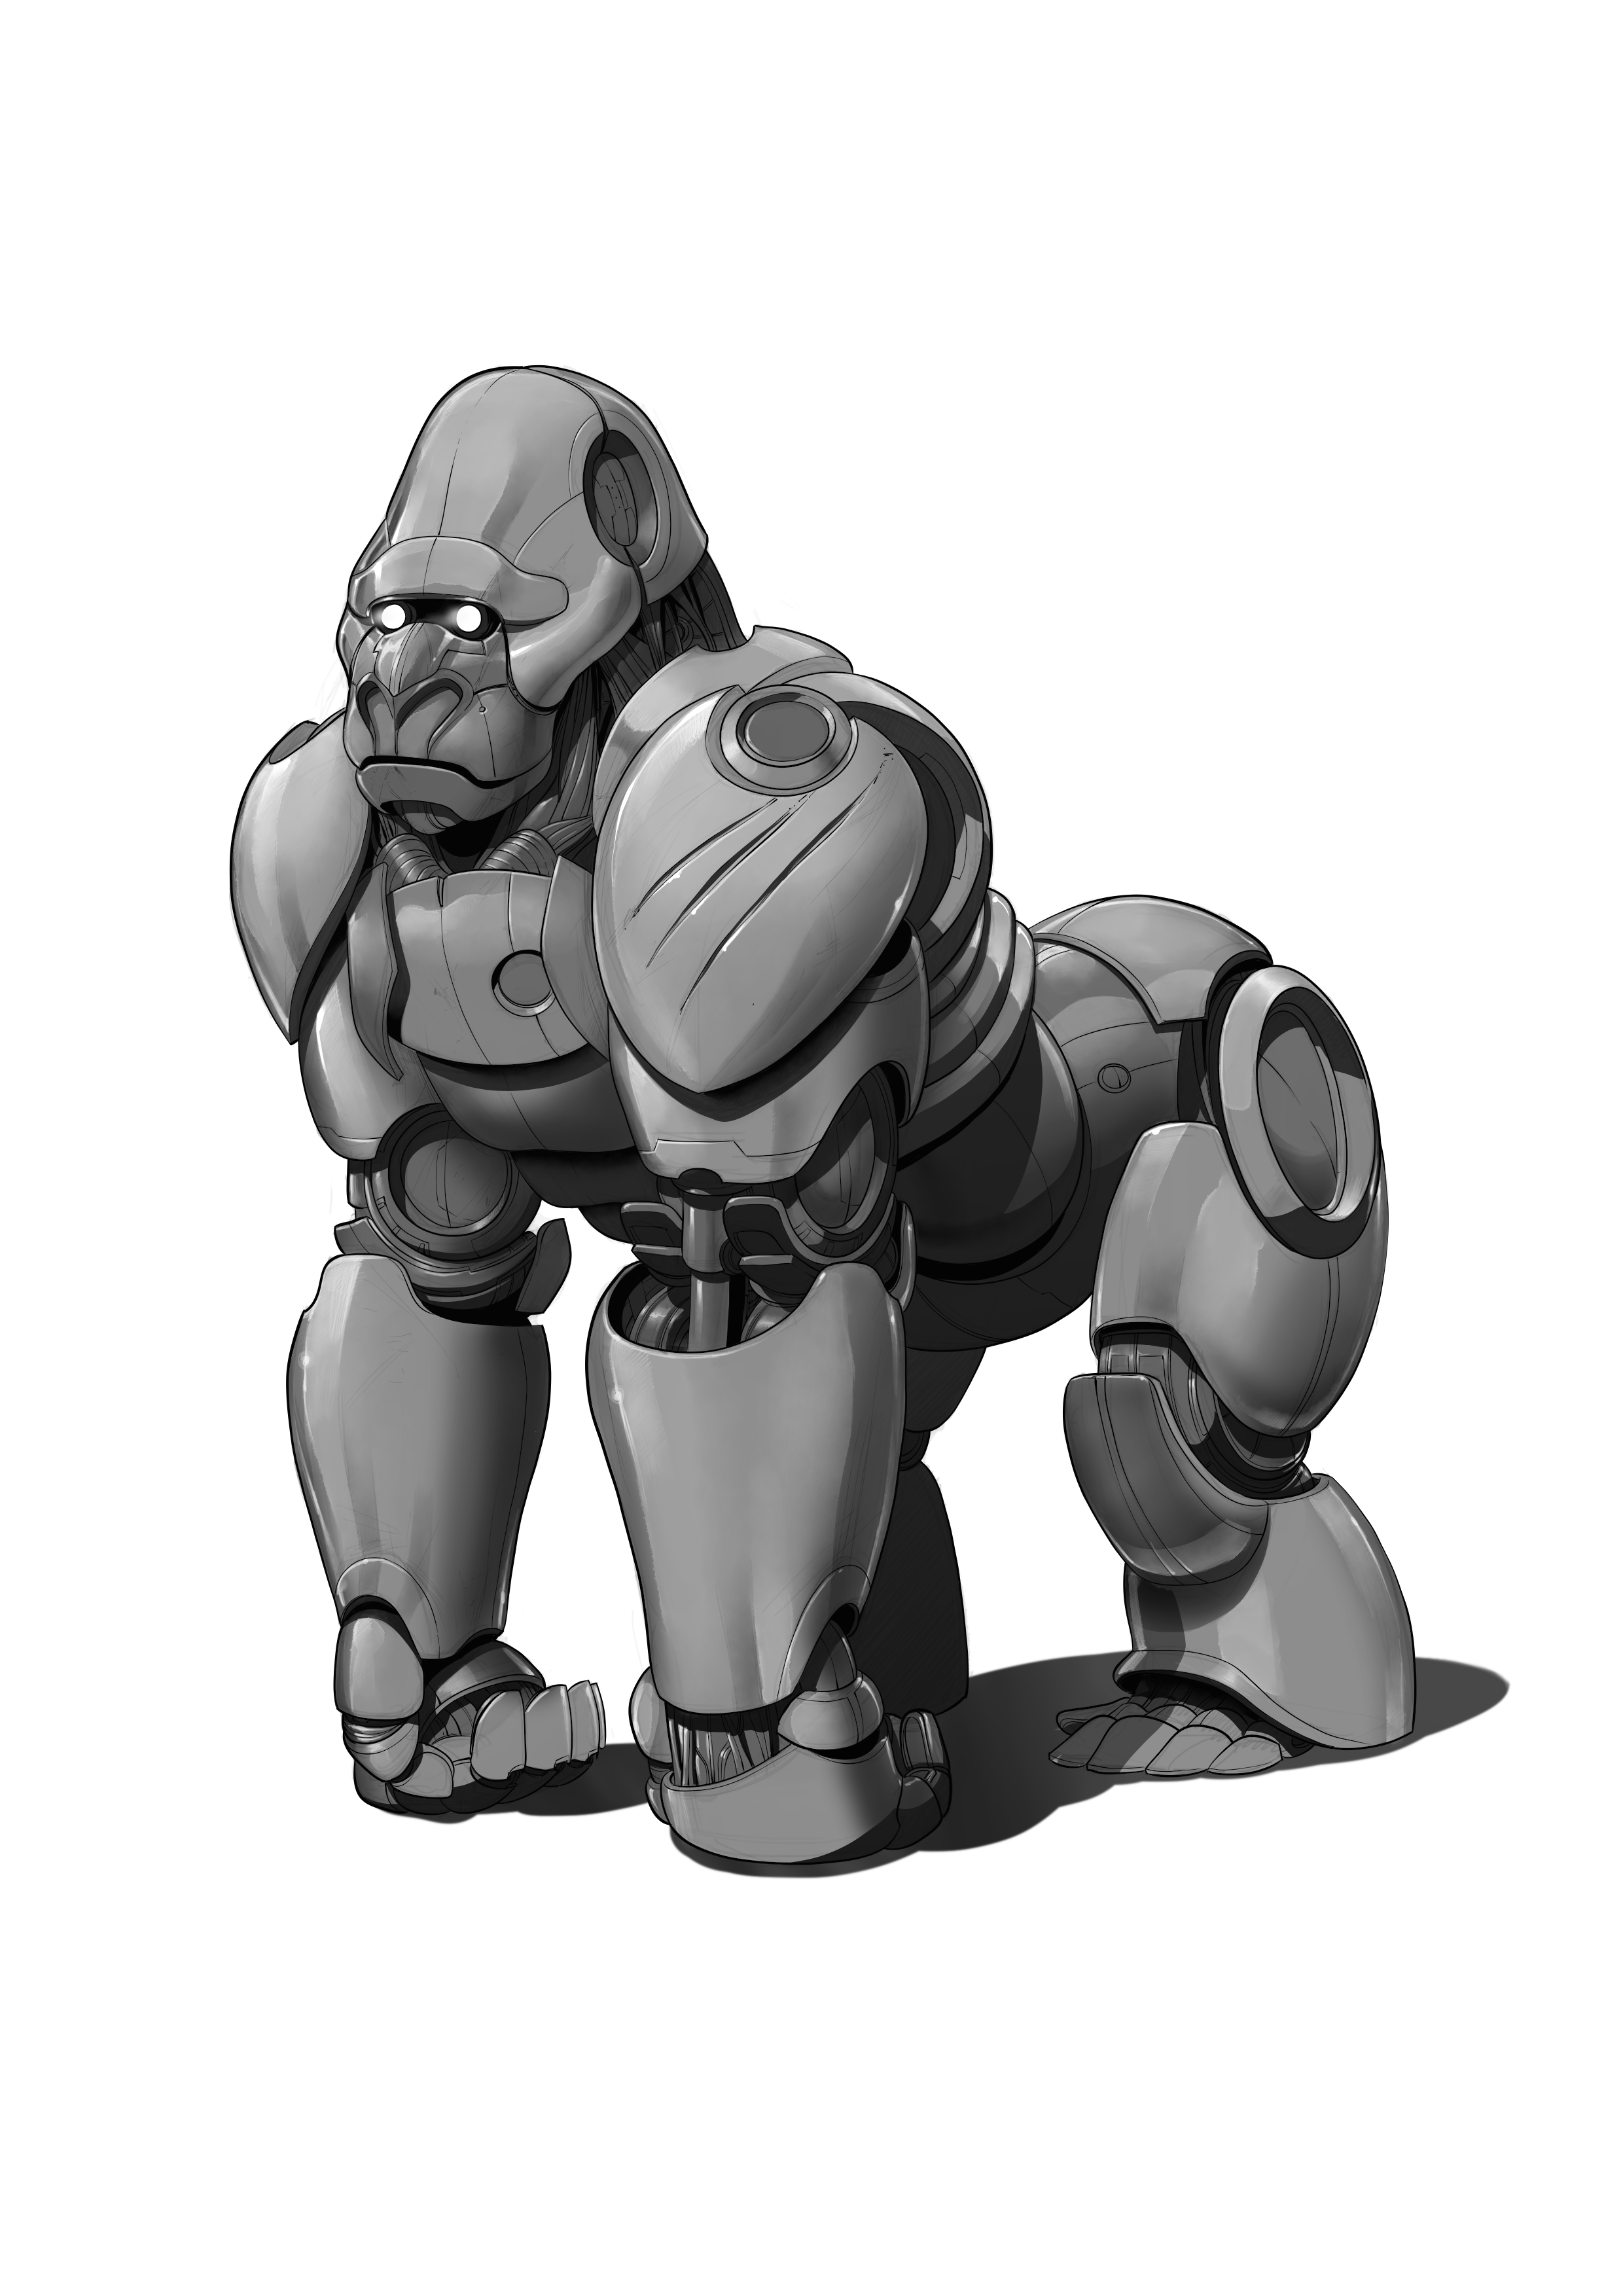 Drawing gorilla robot. Personal protective equipment gear